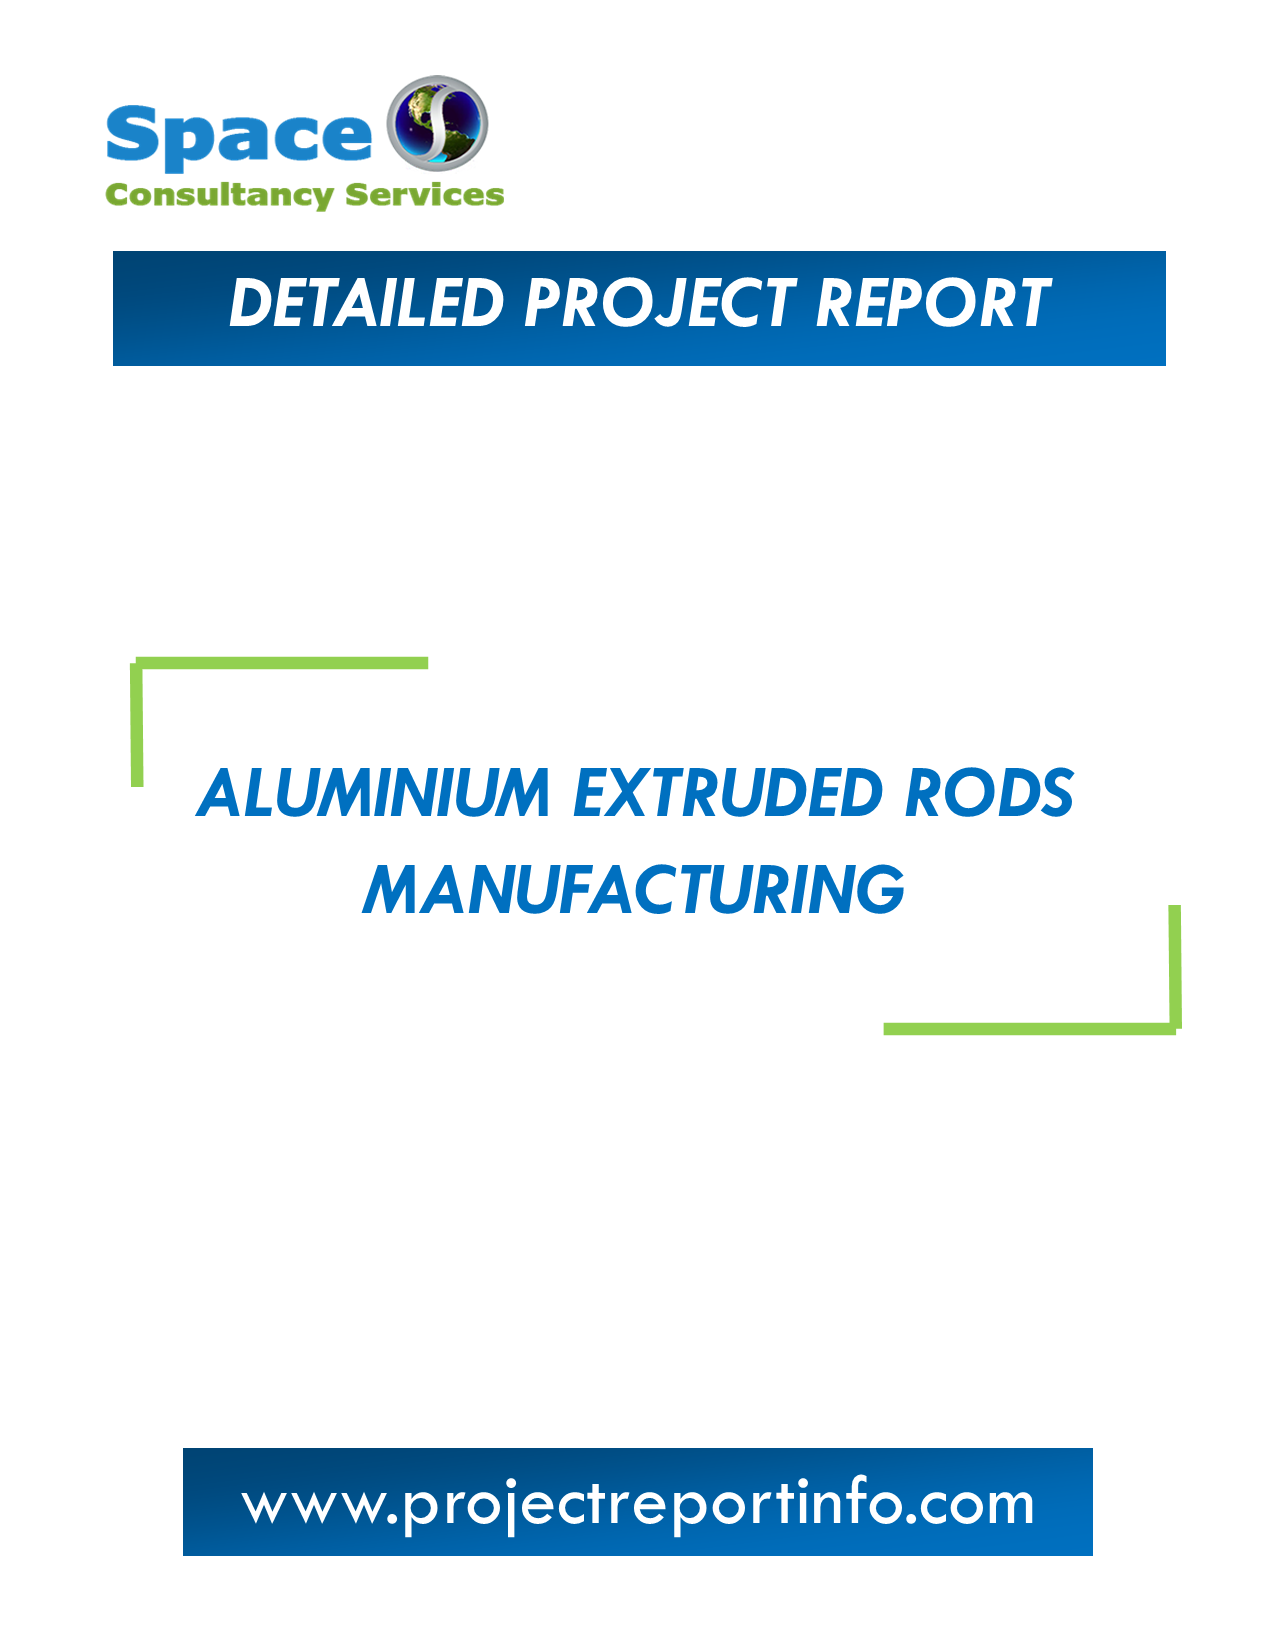 Project Report on Aluminium Extruded Rods Manufacturing